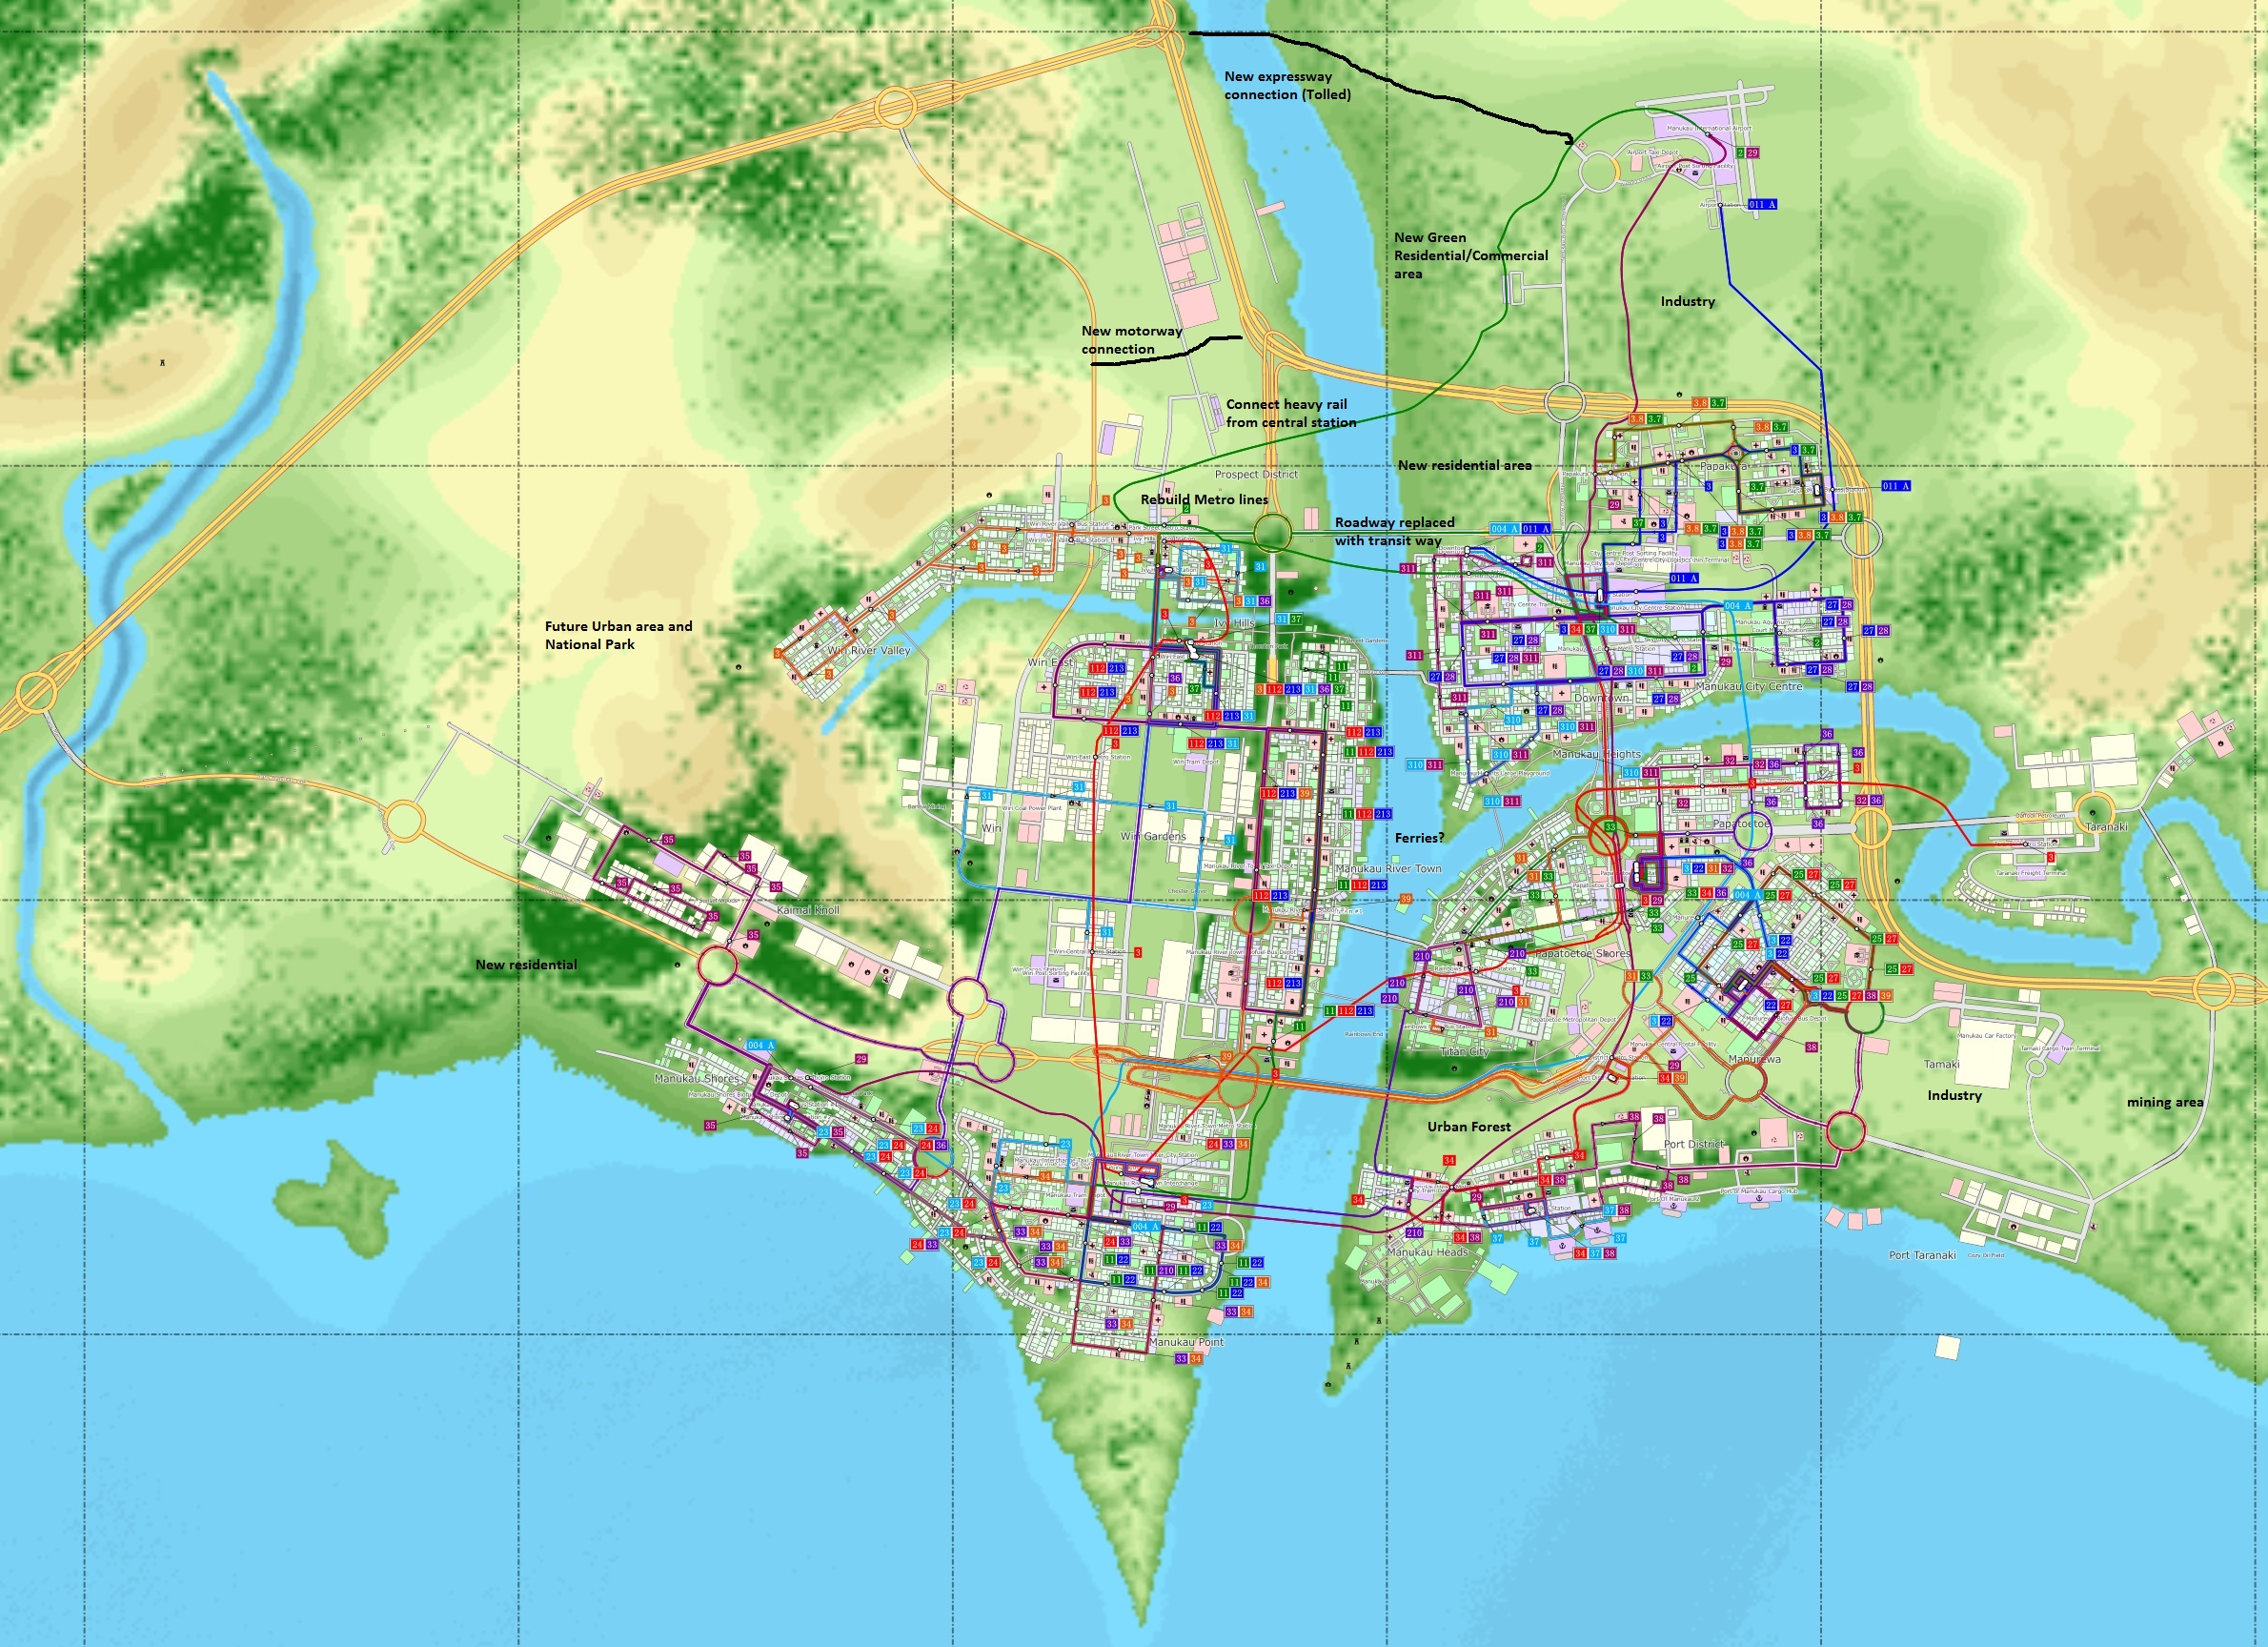 I Am A Geographer, Planner, Designer and Citizen. The Rise of the Urban Simulator and All-Rounder